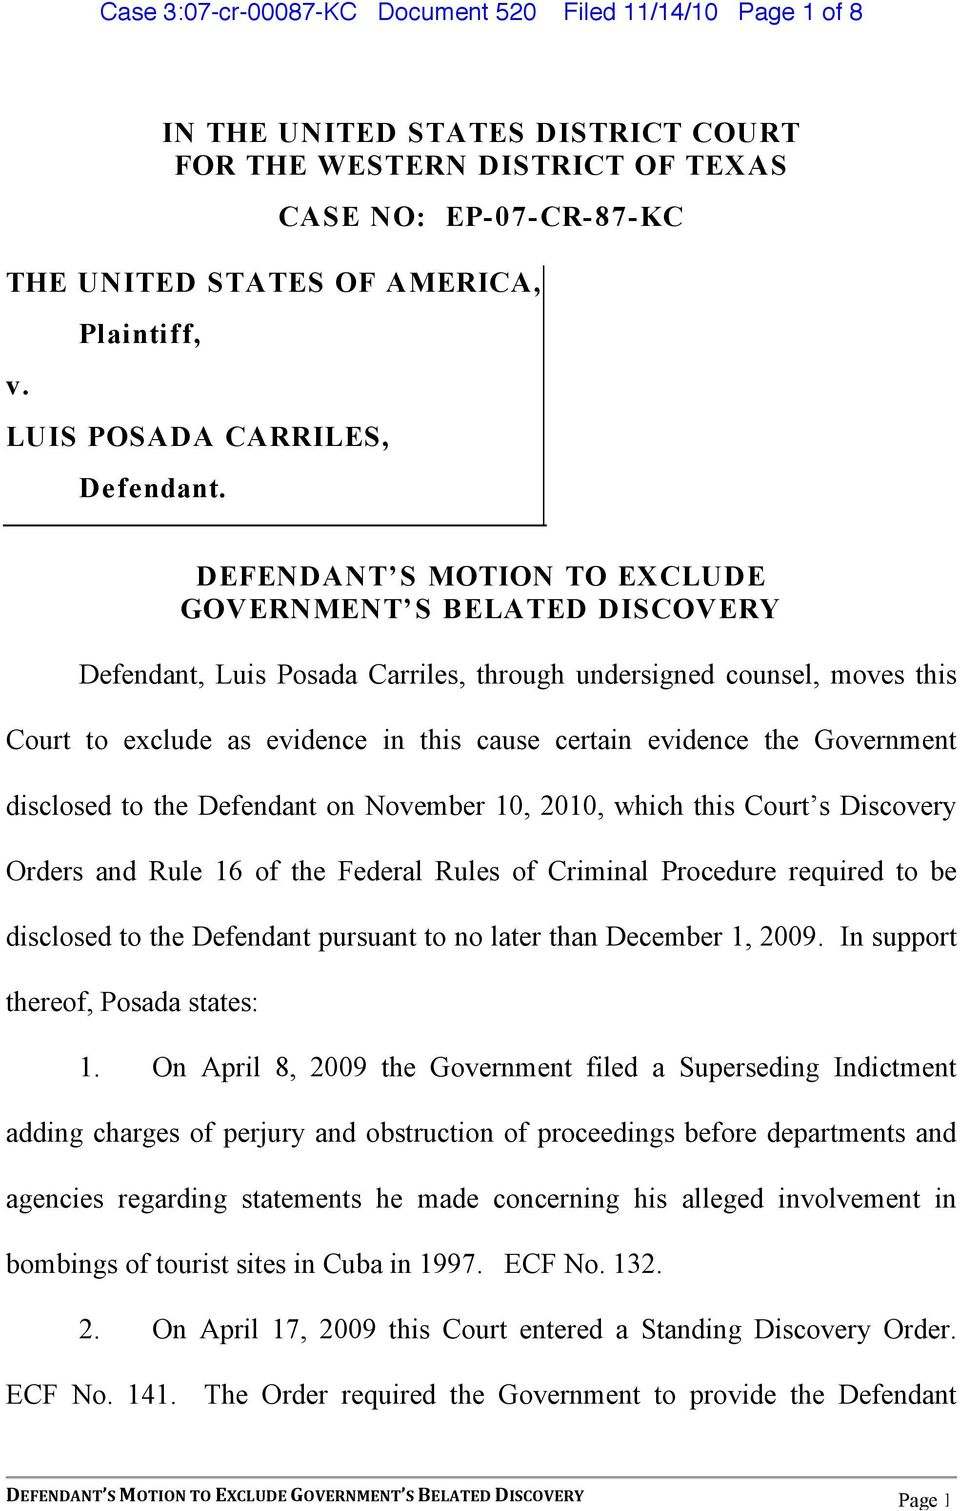 T S BELATED DISCOVERY Defendant, Luis Posada Carriles, through undersigned counsel, moves this Court to exclude as evidence in this cause certain evidence the Government disclosed to the Defendant on